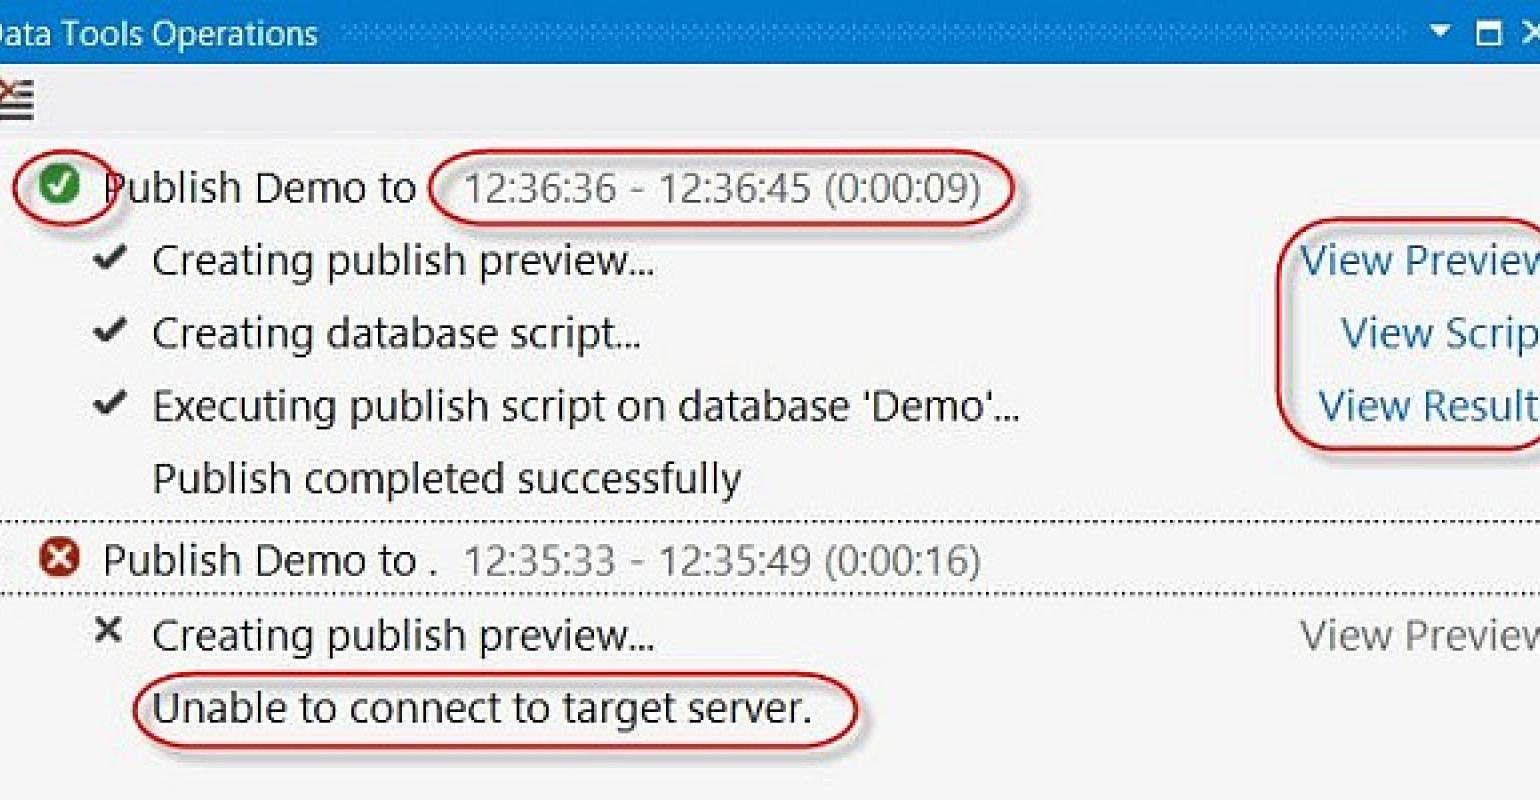 Get to Know SQL Server 2012's SQL Server Data Tools | IT Pro